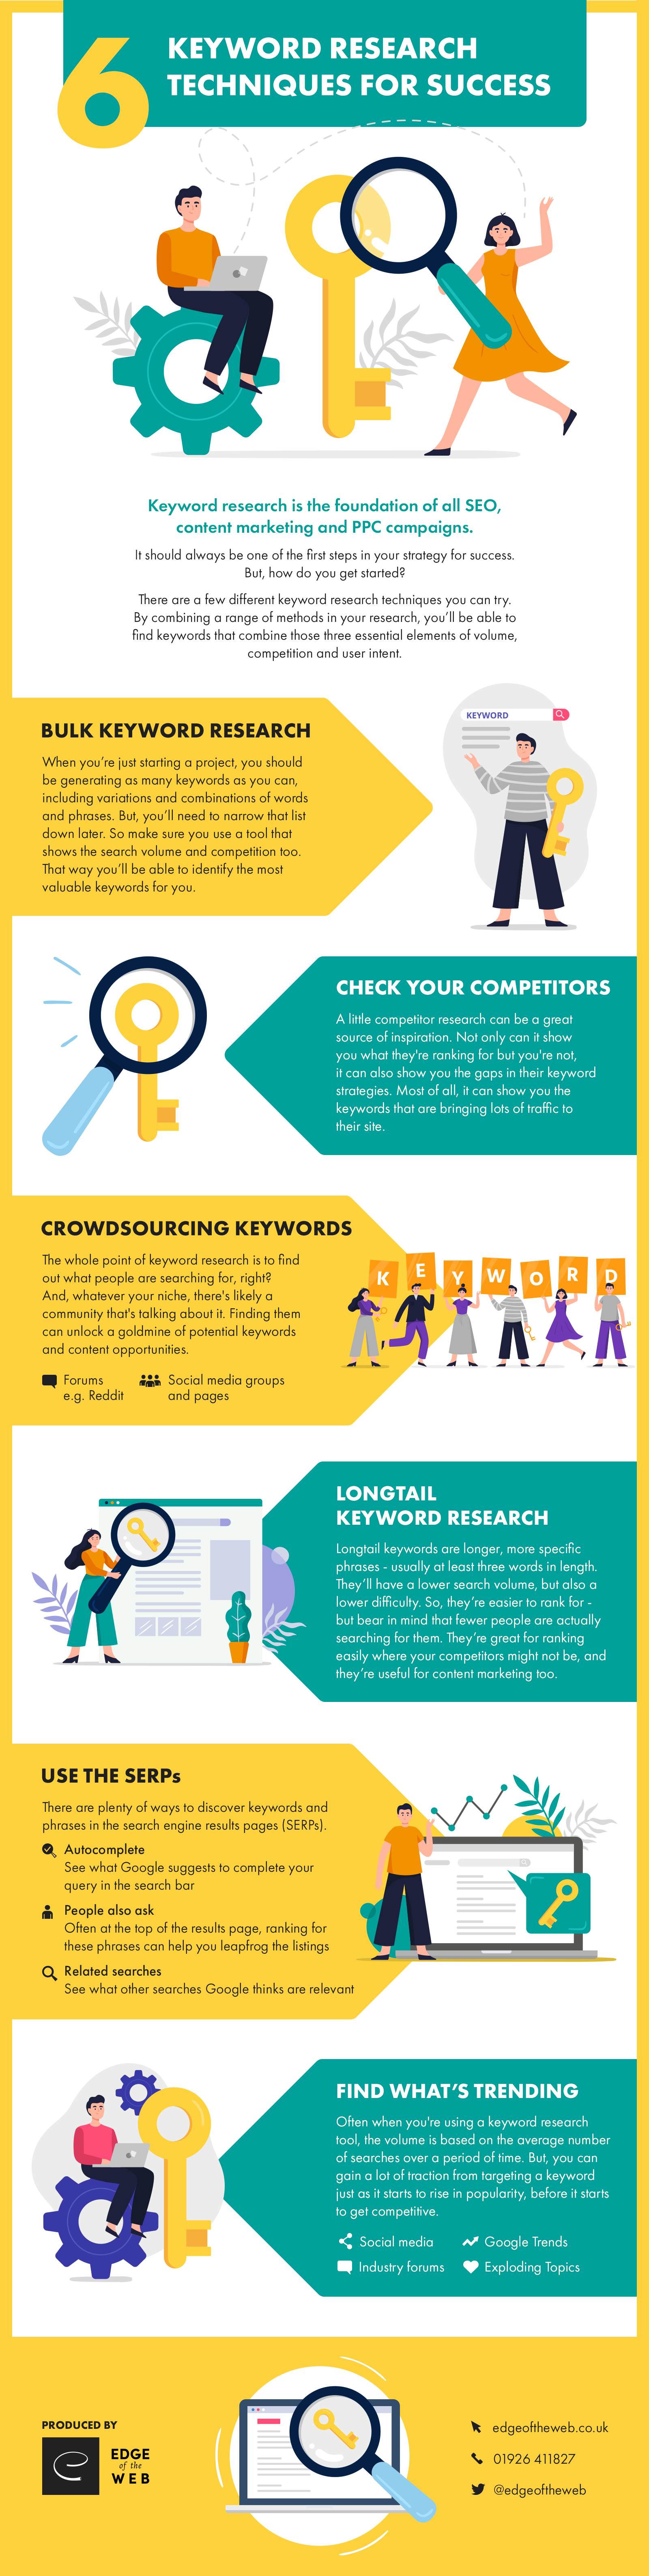 6 Keyword research techniques [Infographic]